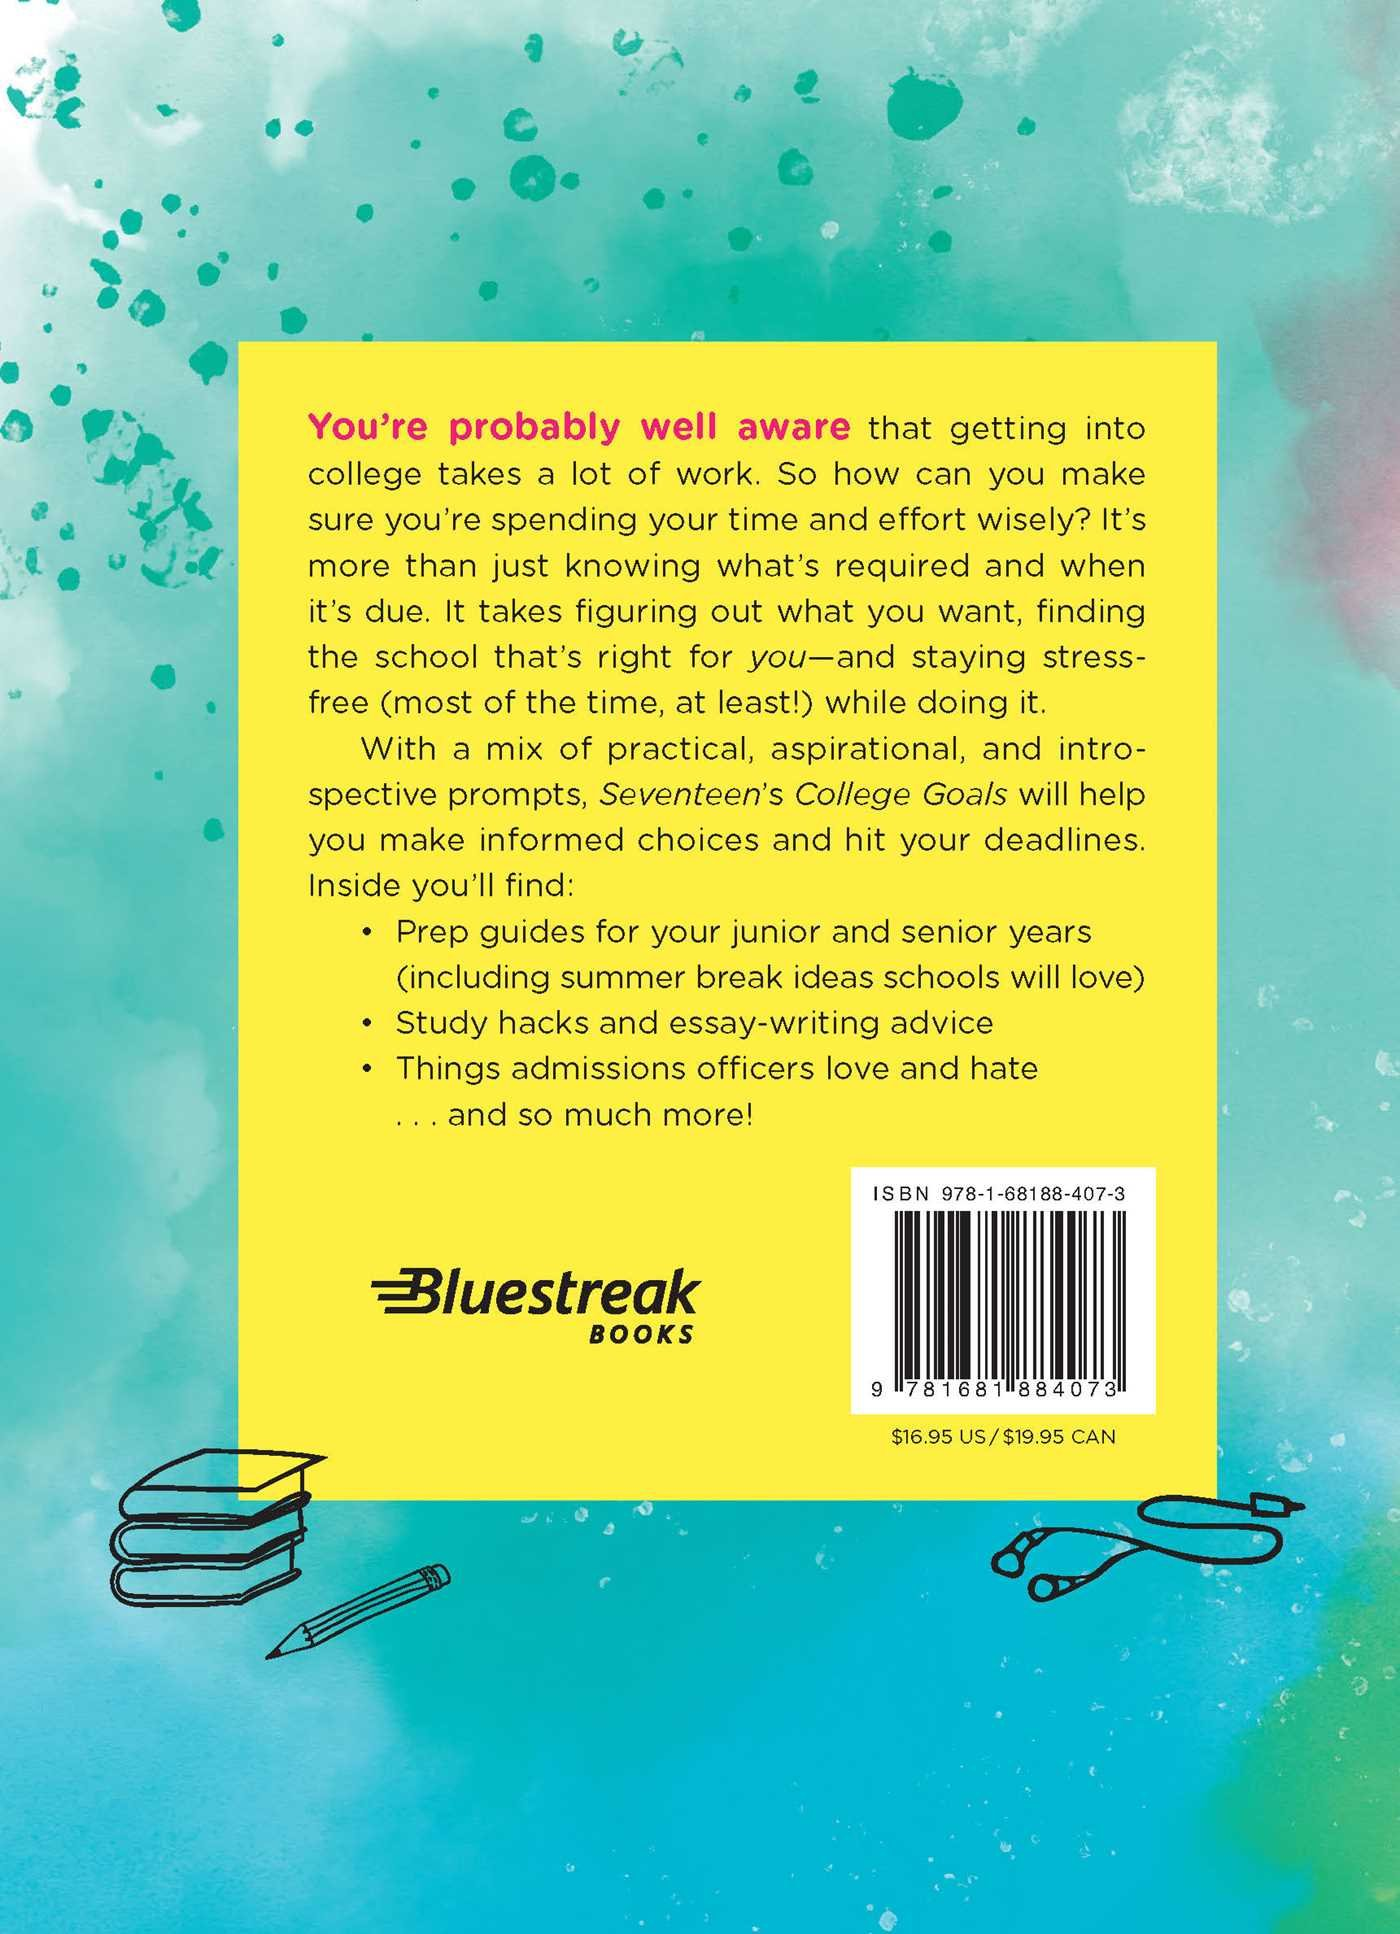 Amazon.com: Seventeen: College Goals: An Insider's Guide to Finding and  Getting Into A School You'll Love (9781681884073): Editors of Seventeen  Magazine: ...